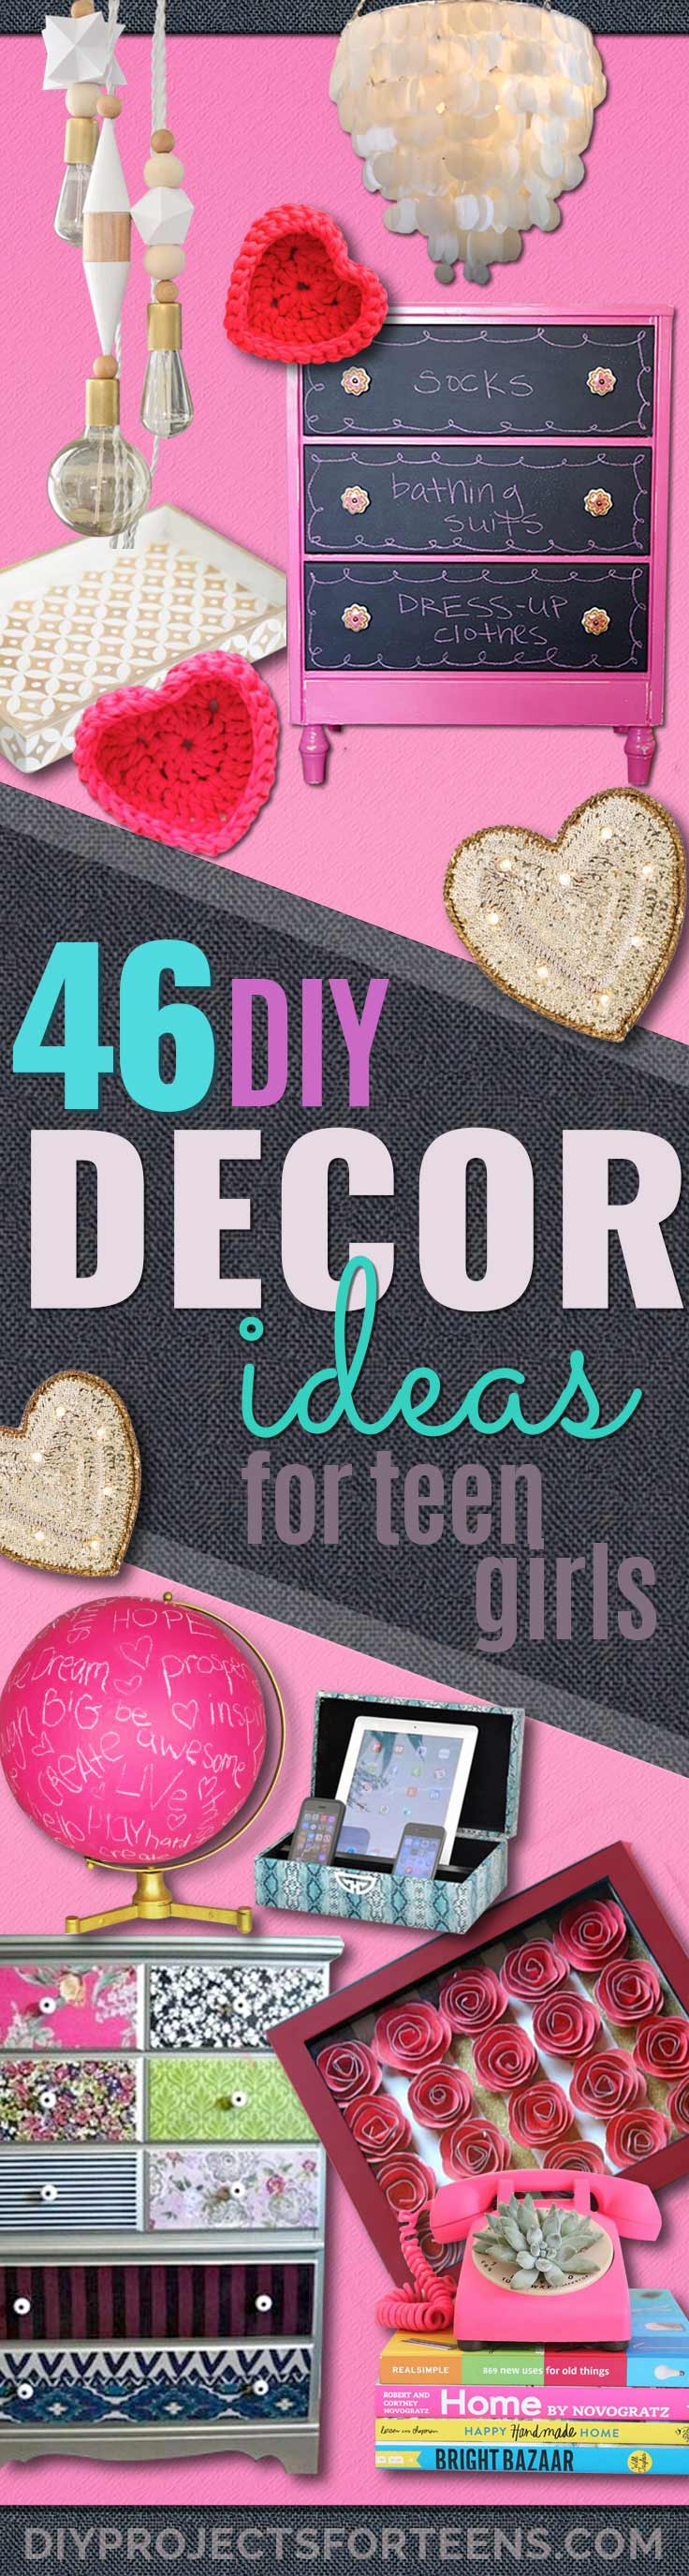 DIY Teen Room Decor Ideas for Girls | Fun Crafts and Decor For Tweens | Cool Bedroom Decor, Wall Art & Signs, Crafts, Bedding, Fun Do It Yourself Projects and Room Ideas for Small Spaces